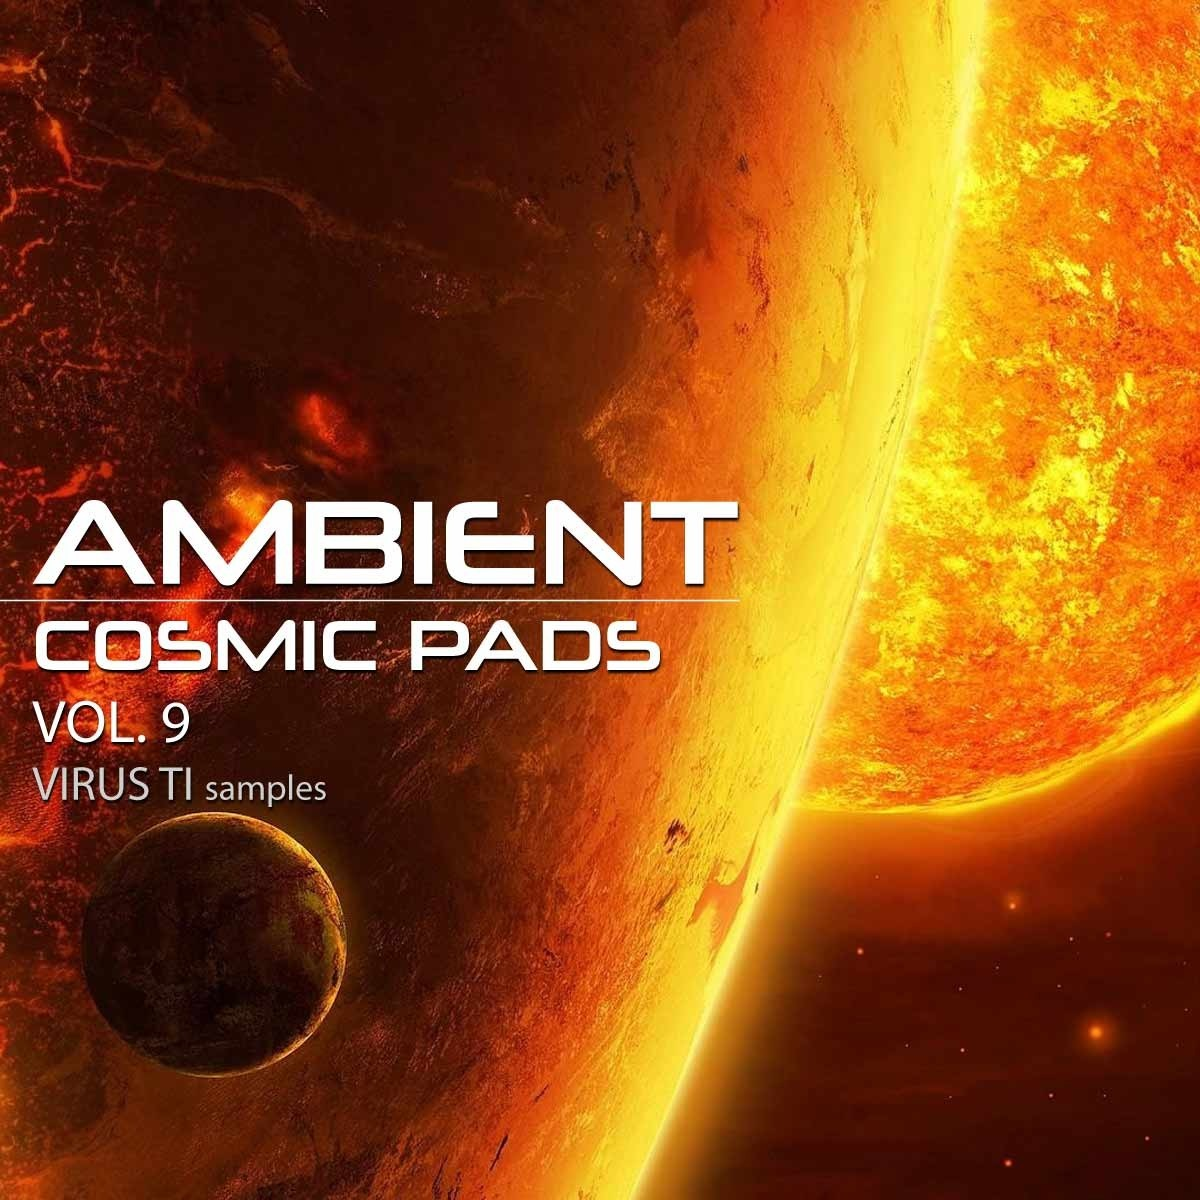 Ambient Cosmic Pads Vol 9